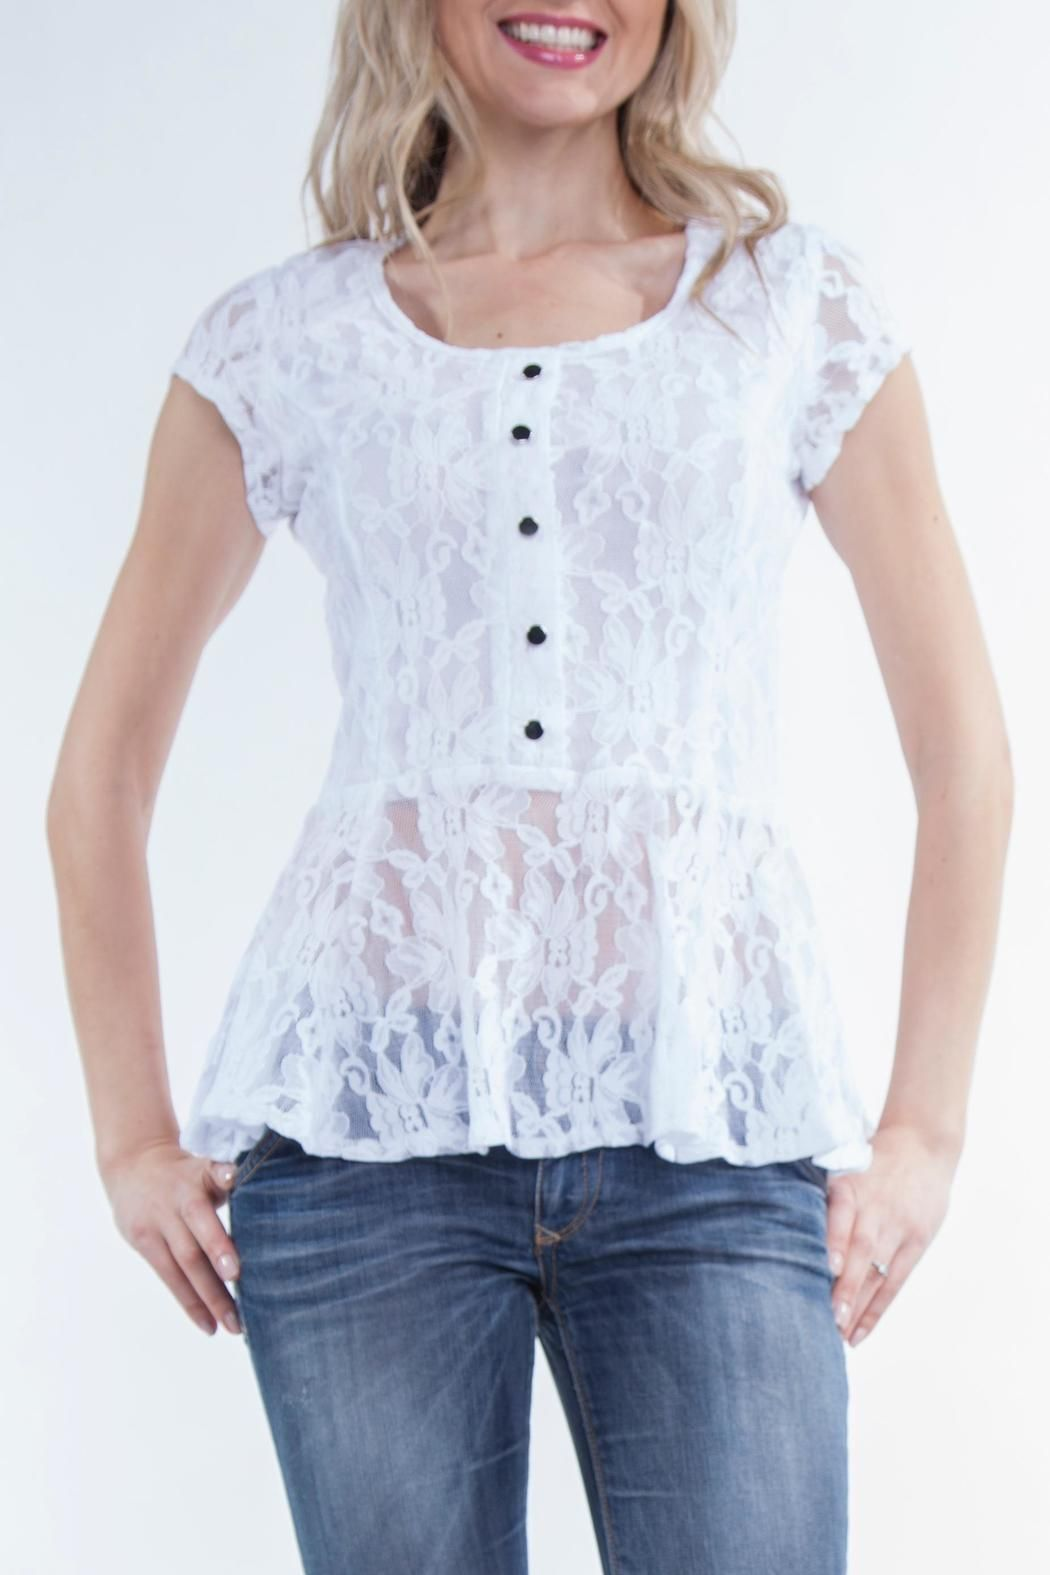 Soft stretch lace - Lined front  Faux button detail front   Great with jeans or pants  Dress it up or down  Limited Edition  Designed by Yvonne Marie  Material: Poly/spandex  Made in Canada White-Lace Peplum Top by Yvonne Marie. Clothing Montreal, Canada